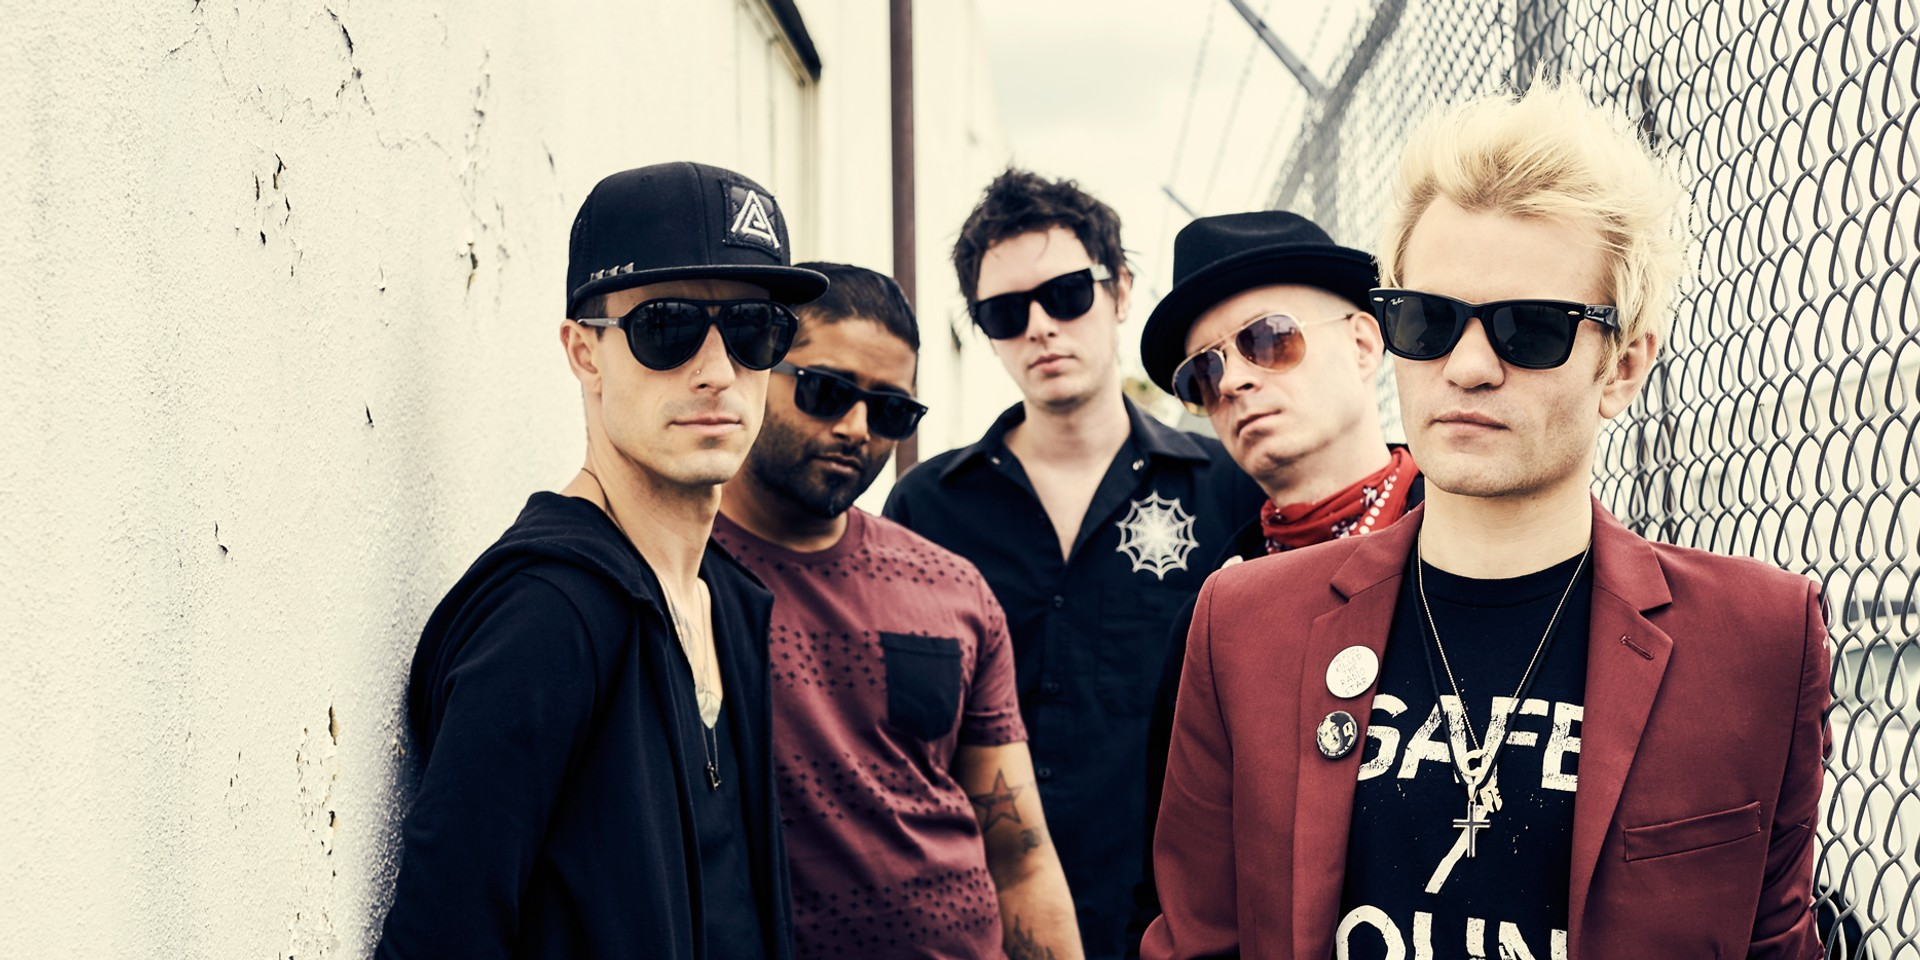 Sum 41's Deryck Whibley tells us the stories behind his band's discography